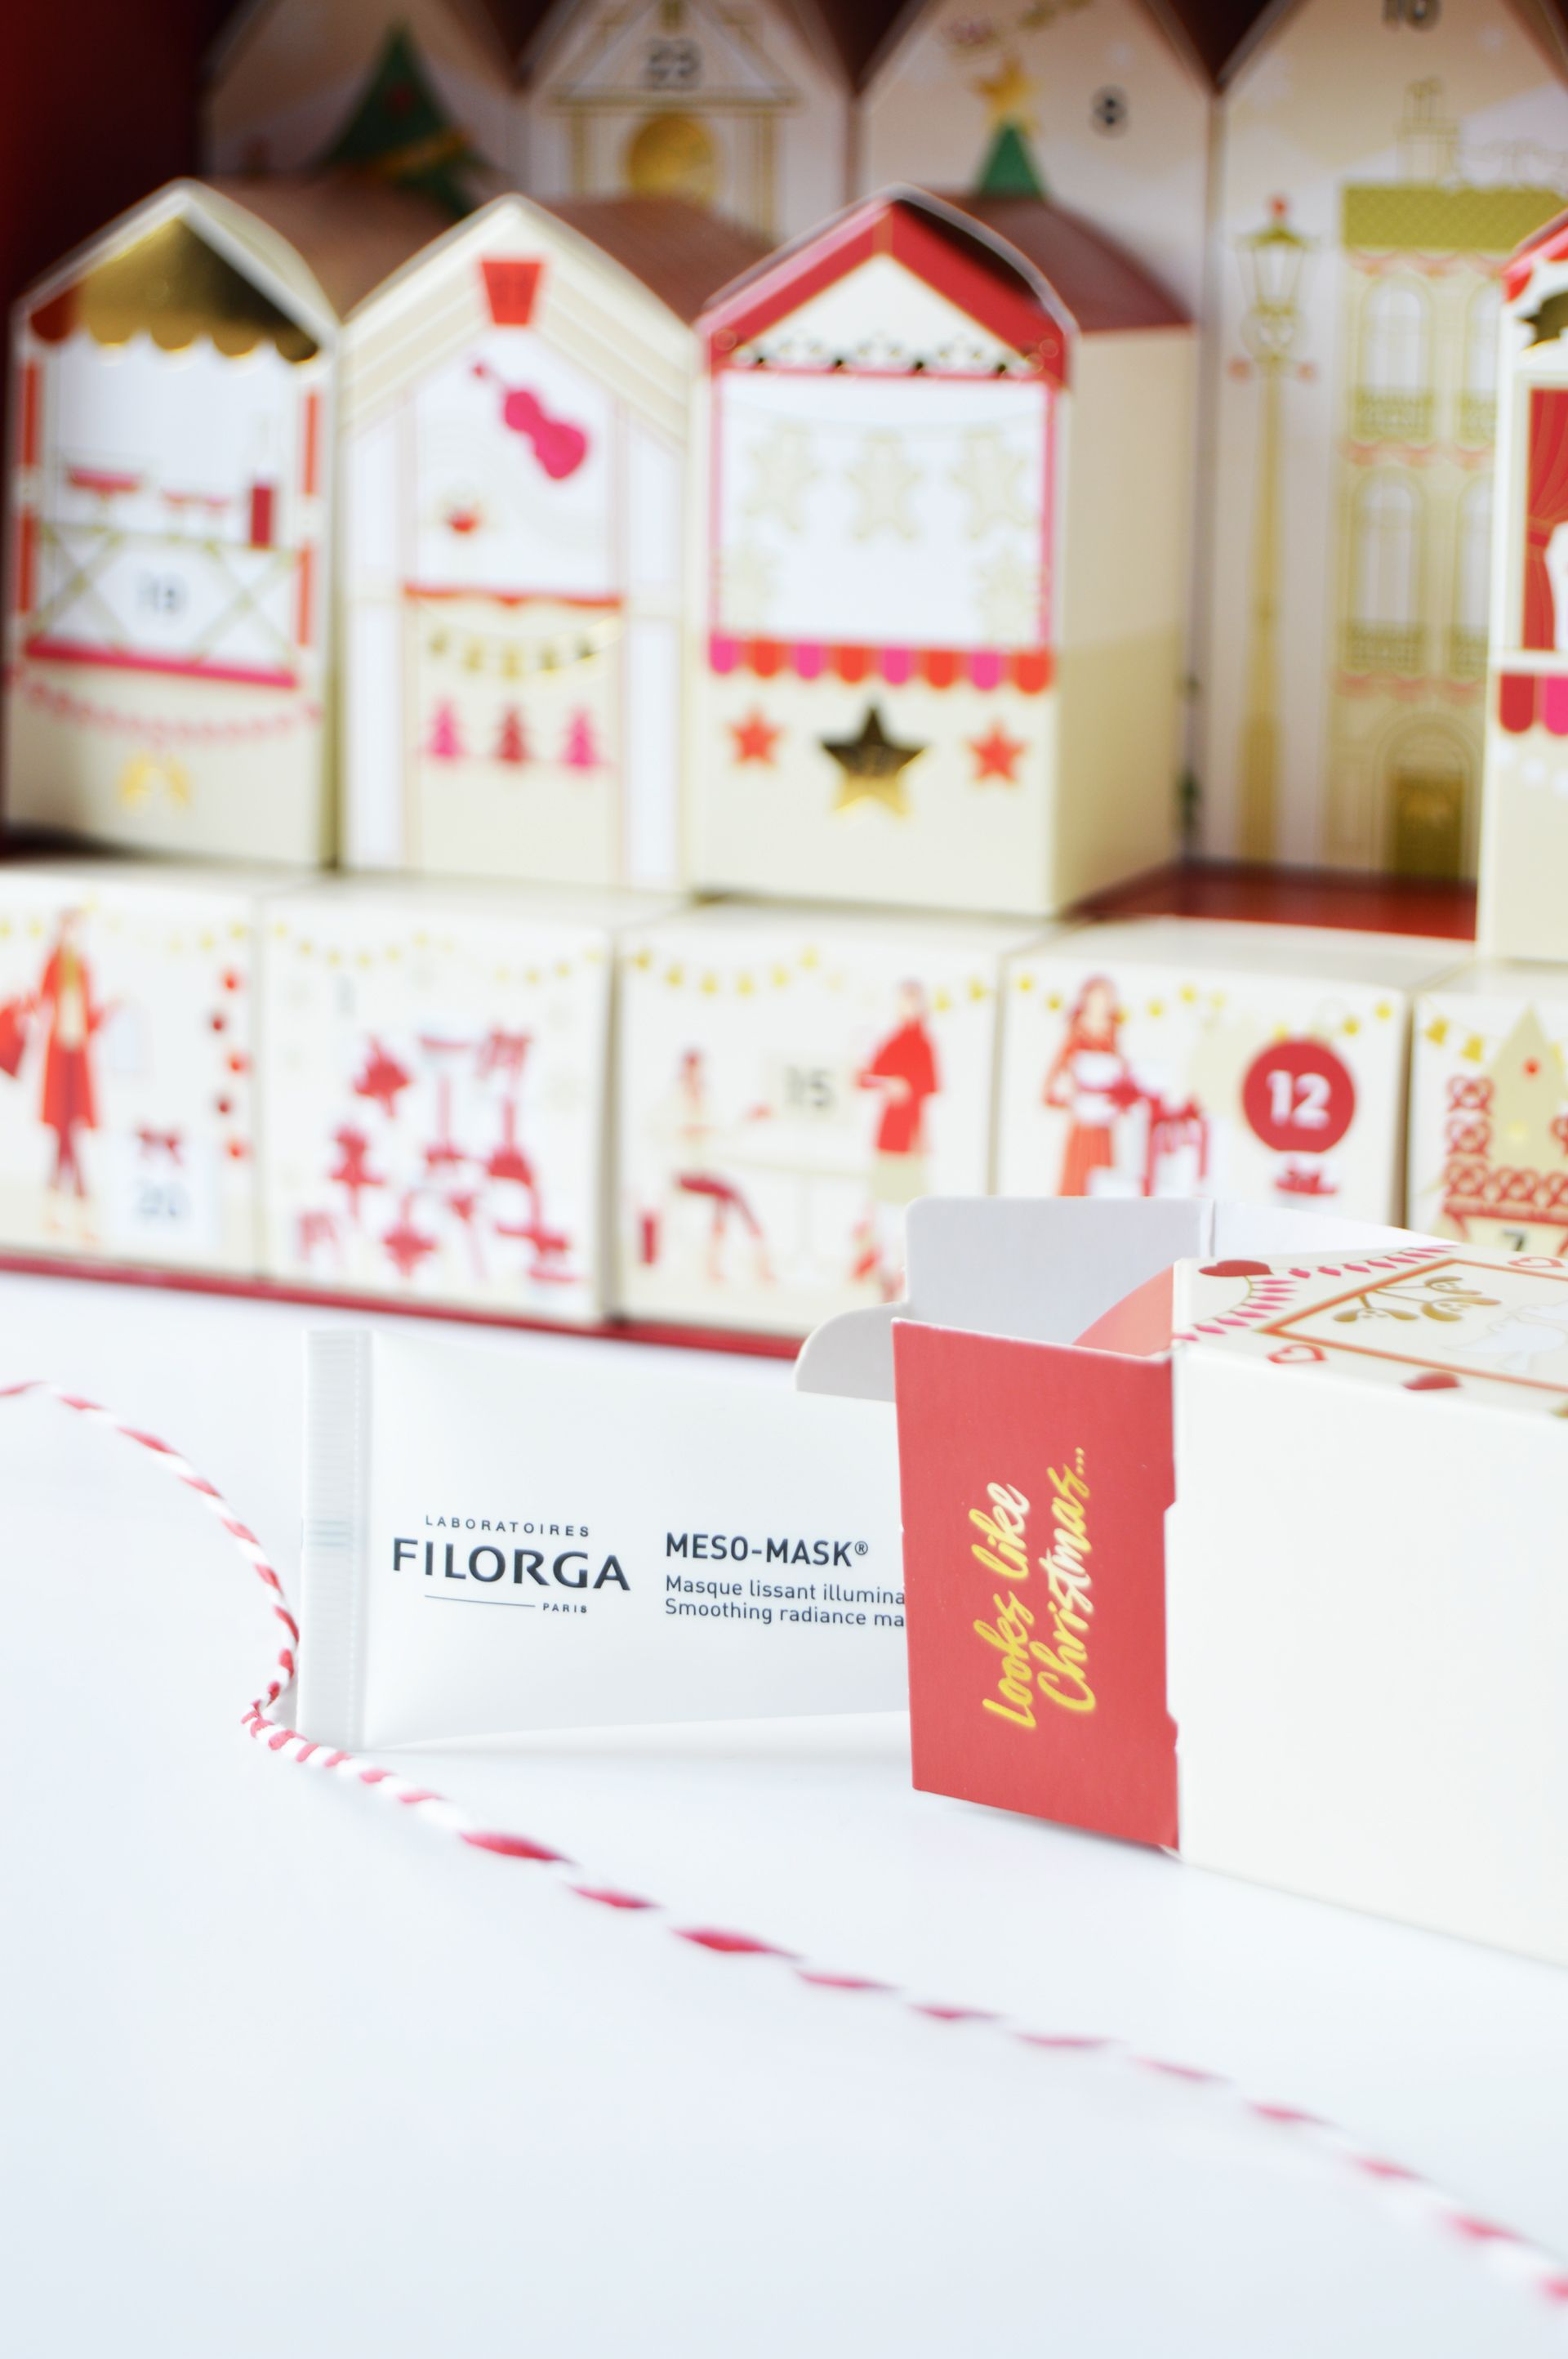 Filorga MESO MASK Smoothing Radiance Mask Review - If you are looking for an hydrating mask then you may want to give this one a try. M&S Advent Calendar Filorga MESO MASK Smoothing Radiance Mask